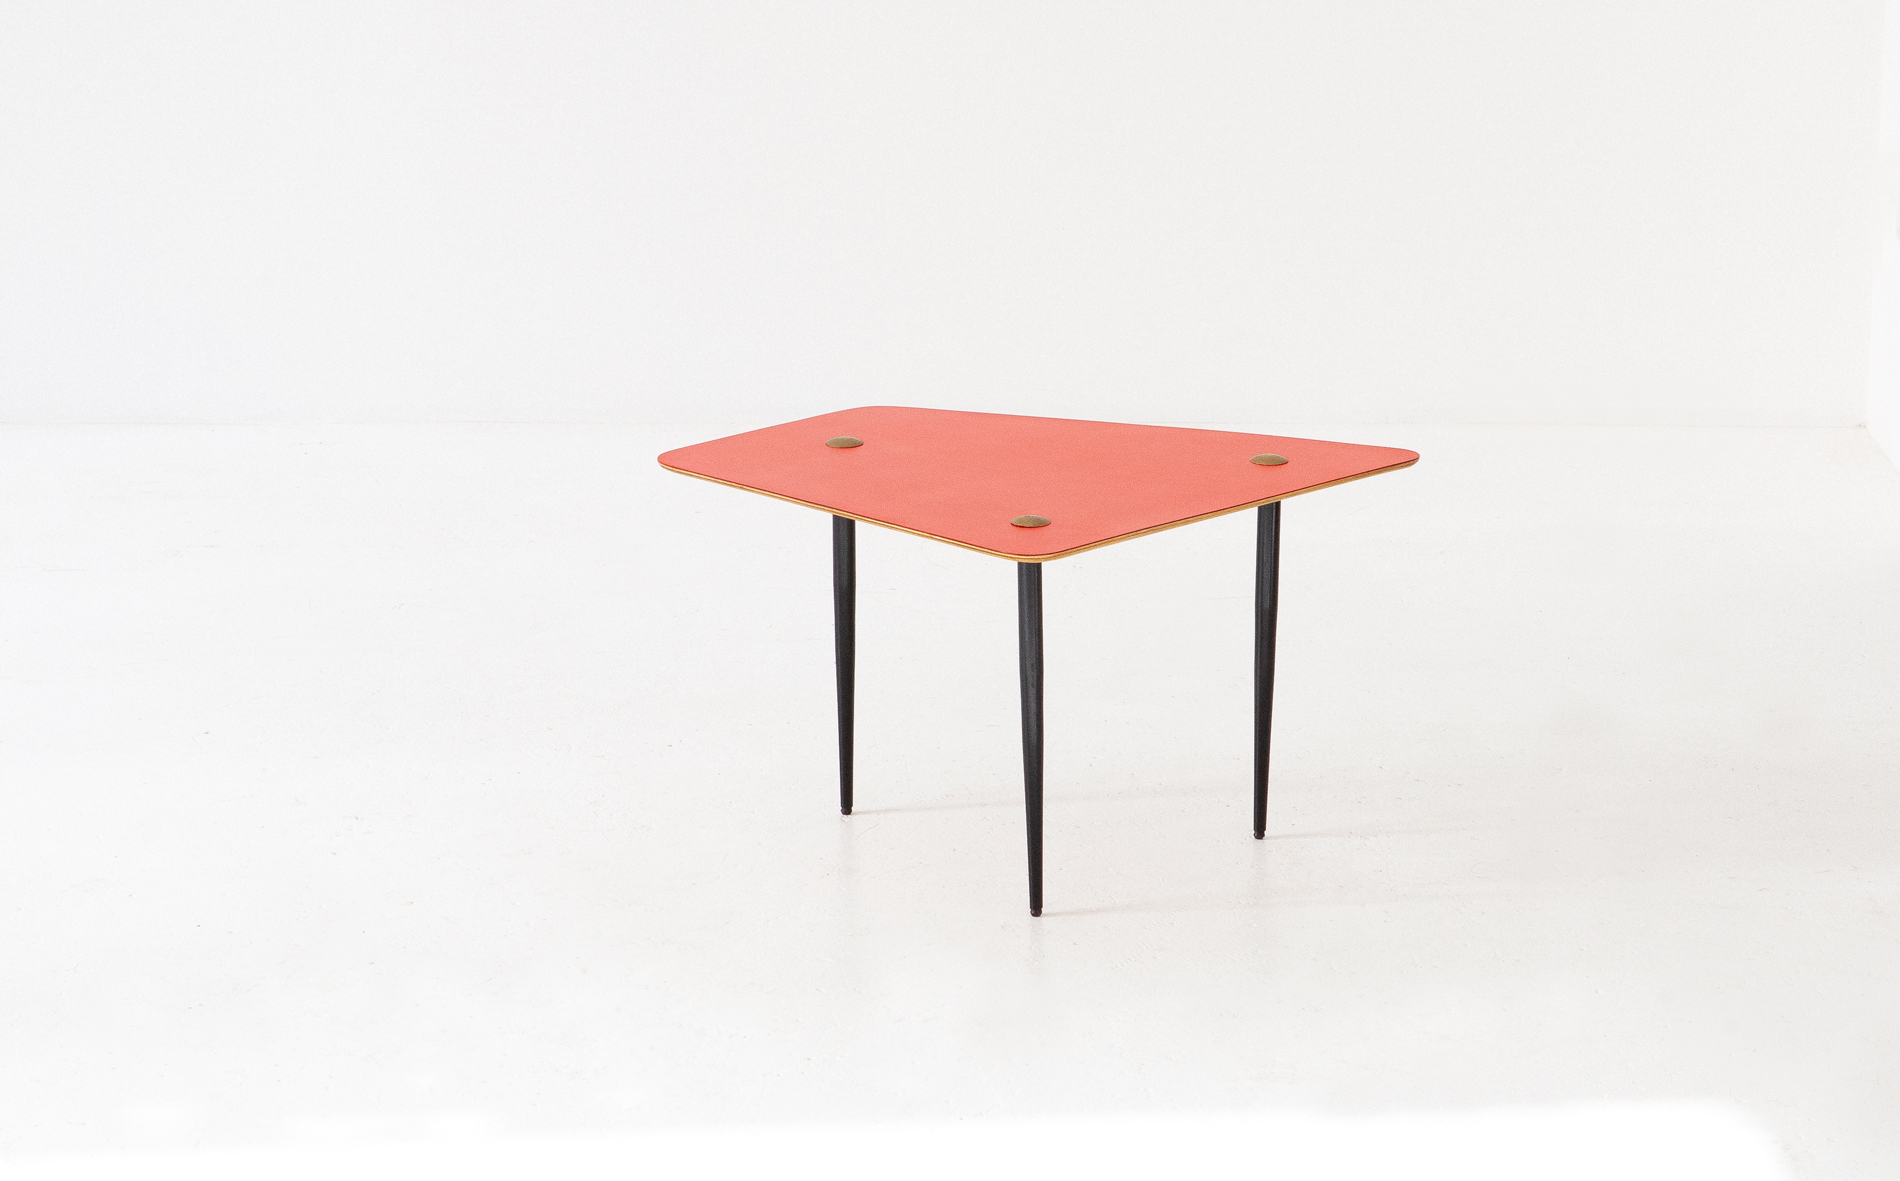 T79-retro4m-italian-black-iron-brass-red-cofee-table-1-1